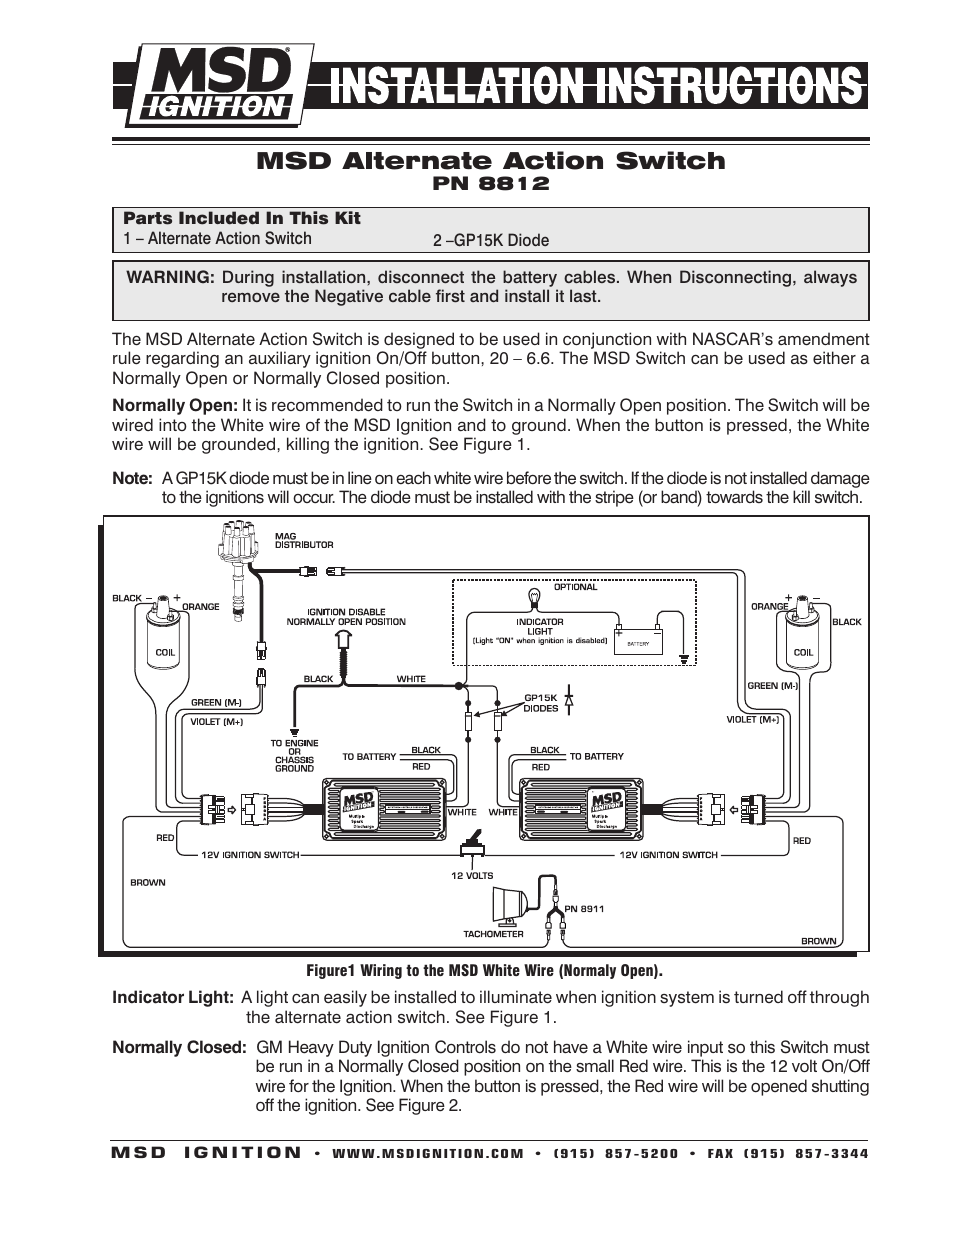 medium resolution of msd 8812 universal push button alt action switch installation user manual 2 pages